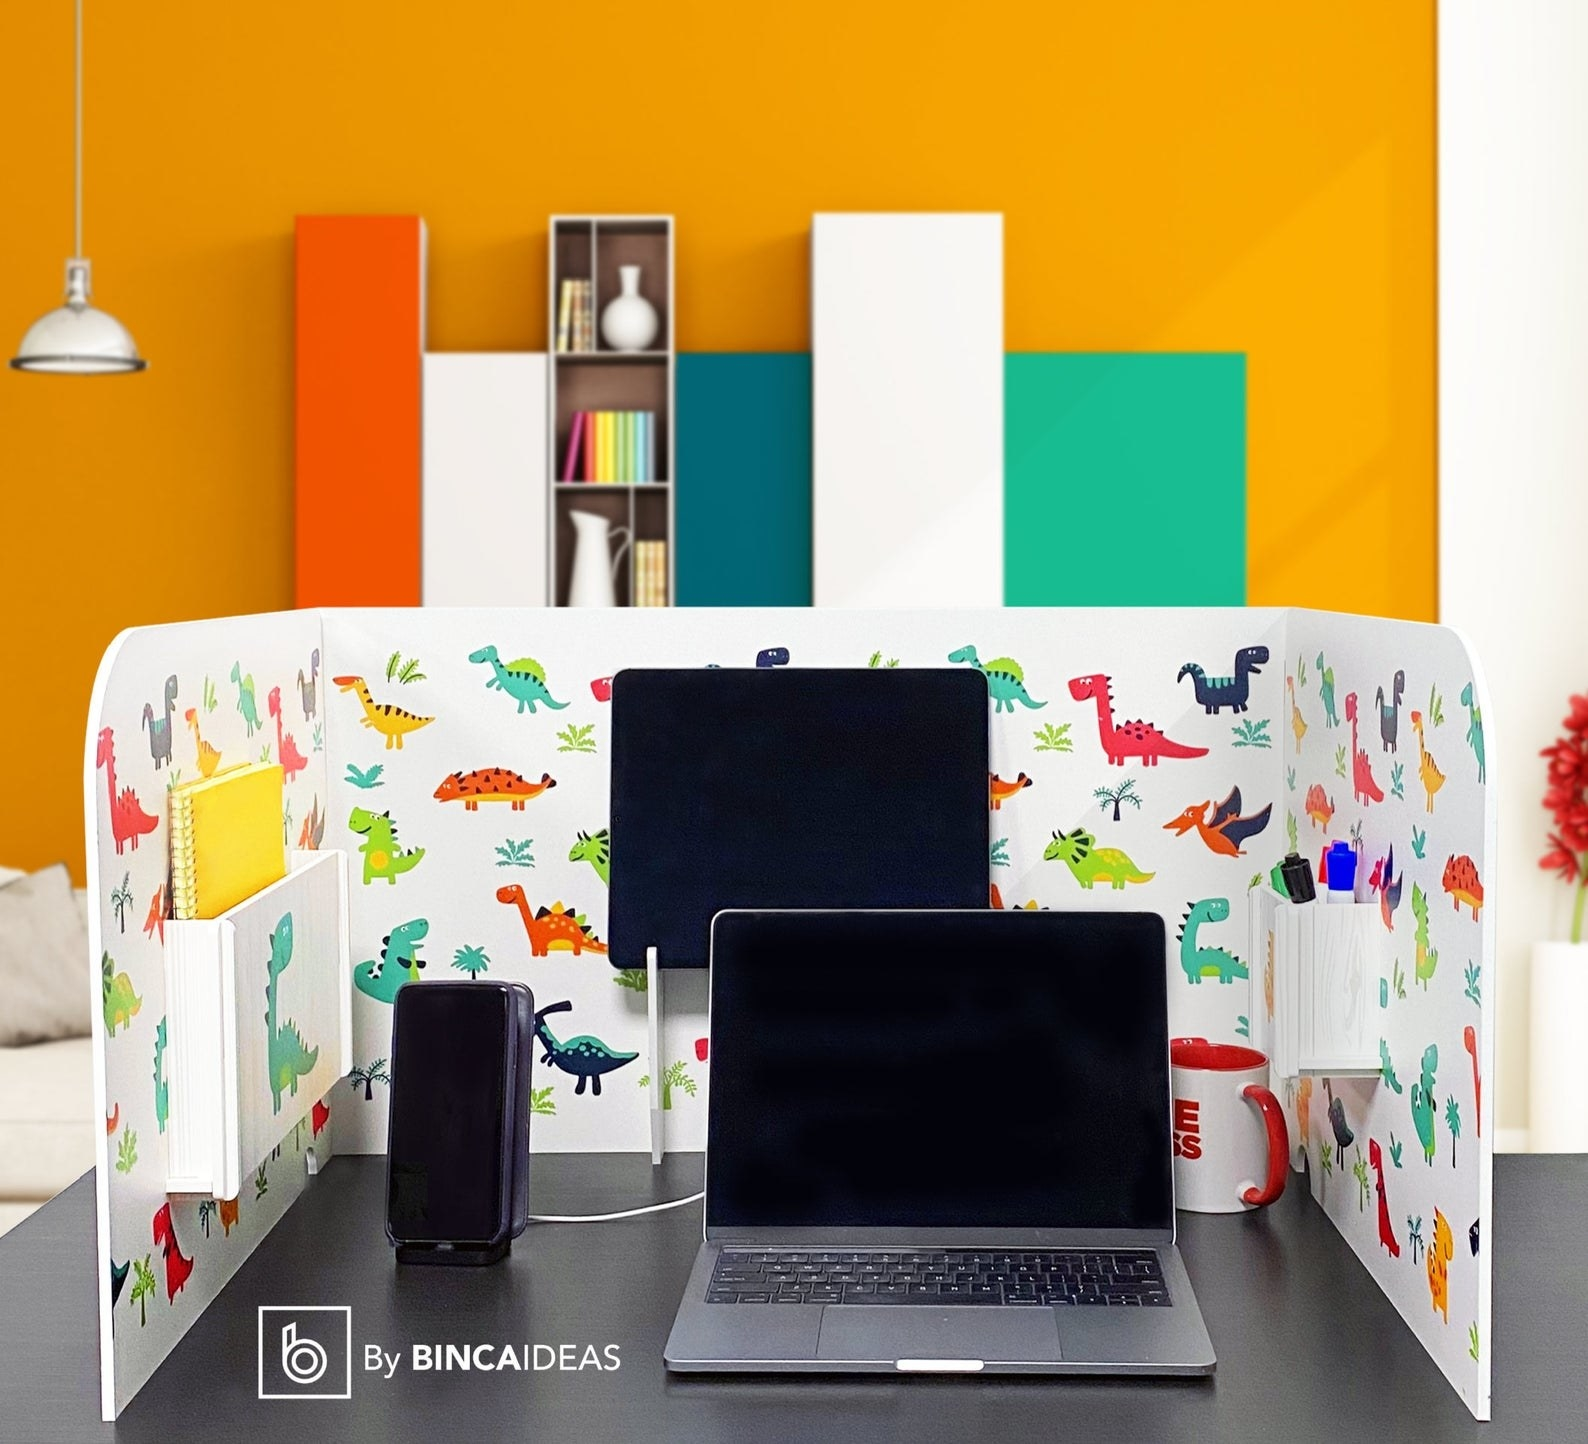 a three-side wooden stand that has two walls and a back (like a box with a missing side). It has a dinosaur print and is standing up on a table. The empty space in the middle has a laptop, speaker, and mug sitting there